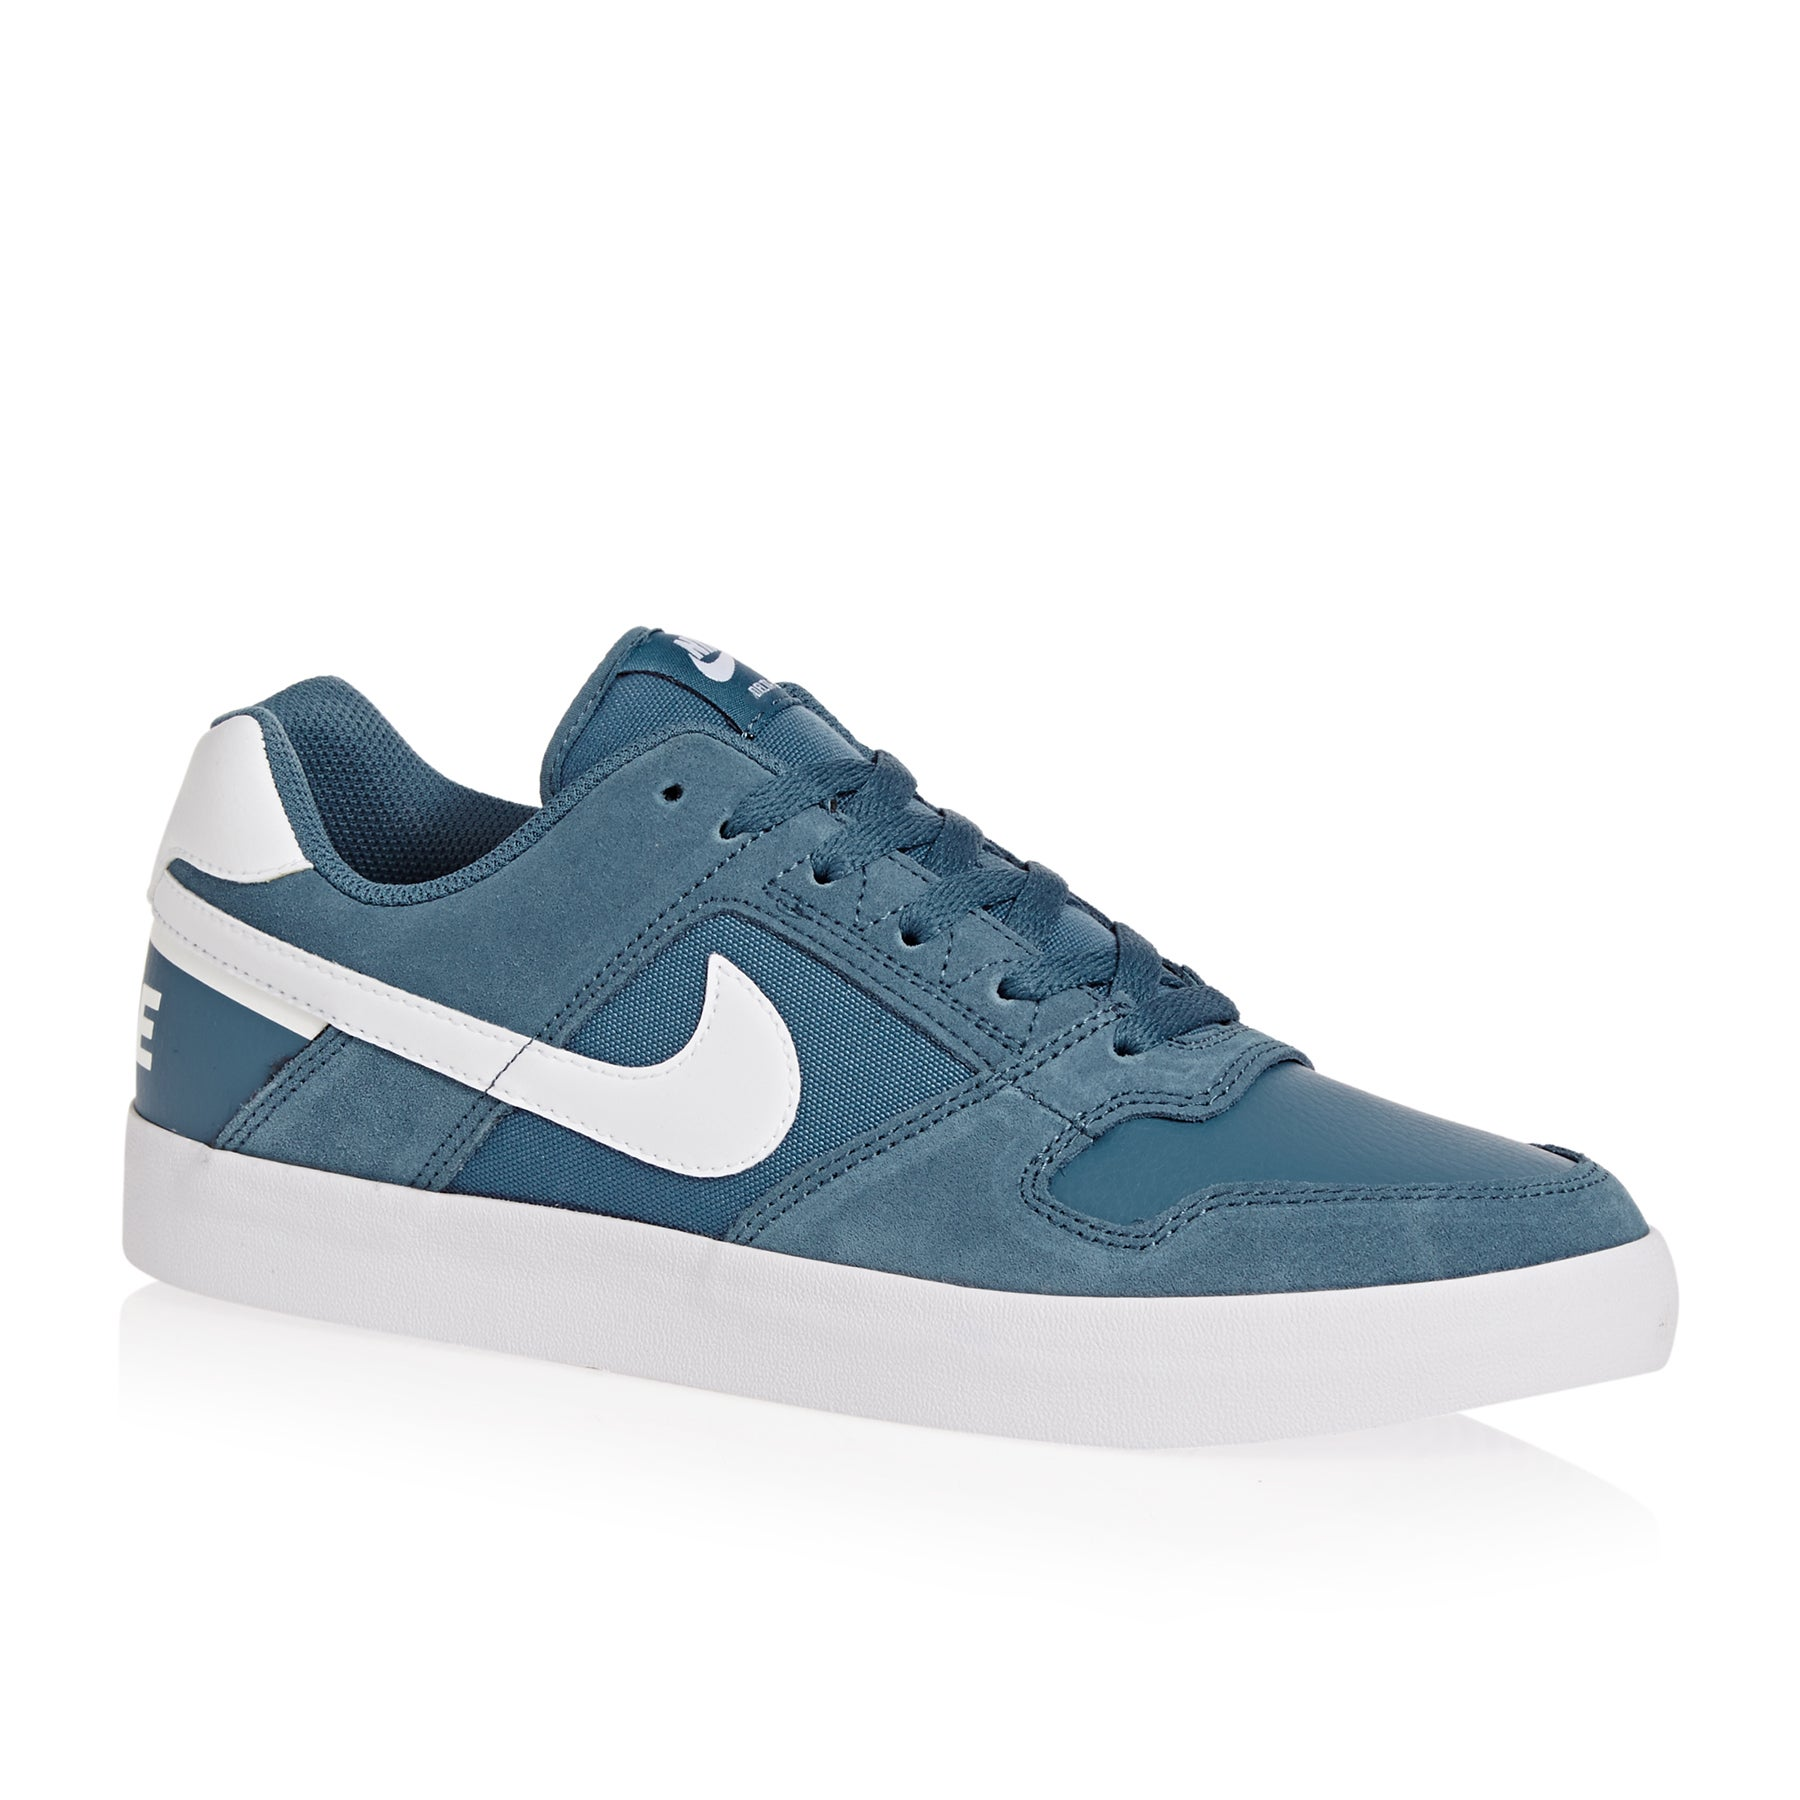 c06b1d61e3c8 Nike SB Delta Force Vulc Shoes available from Surfdome